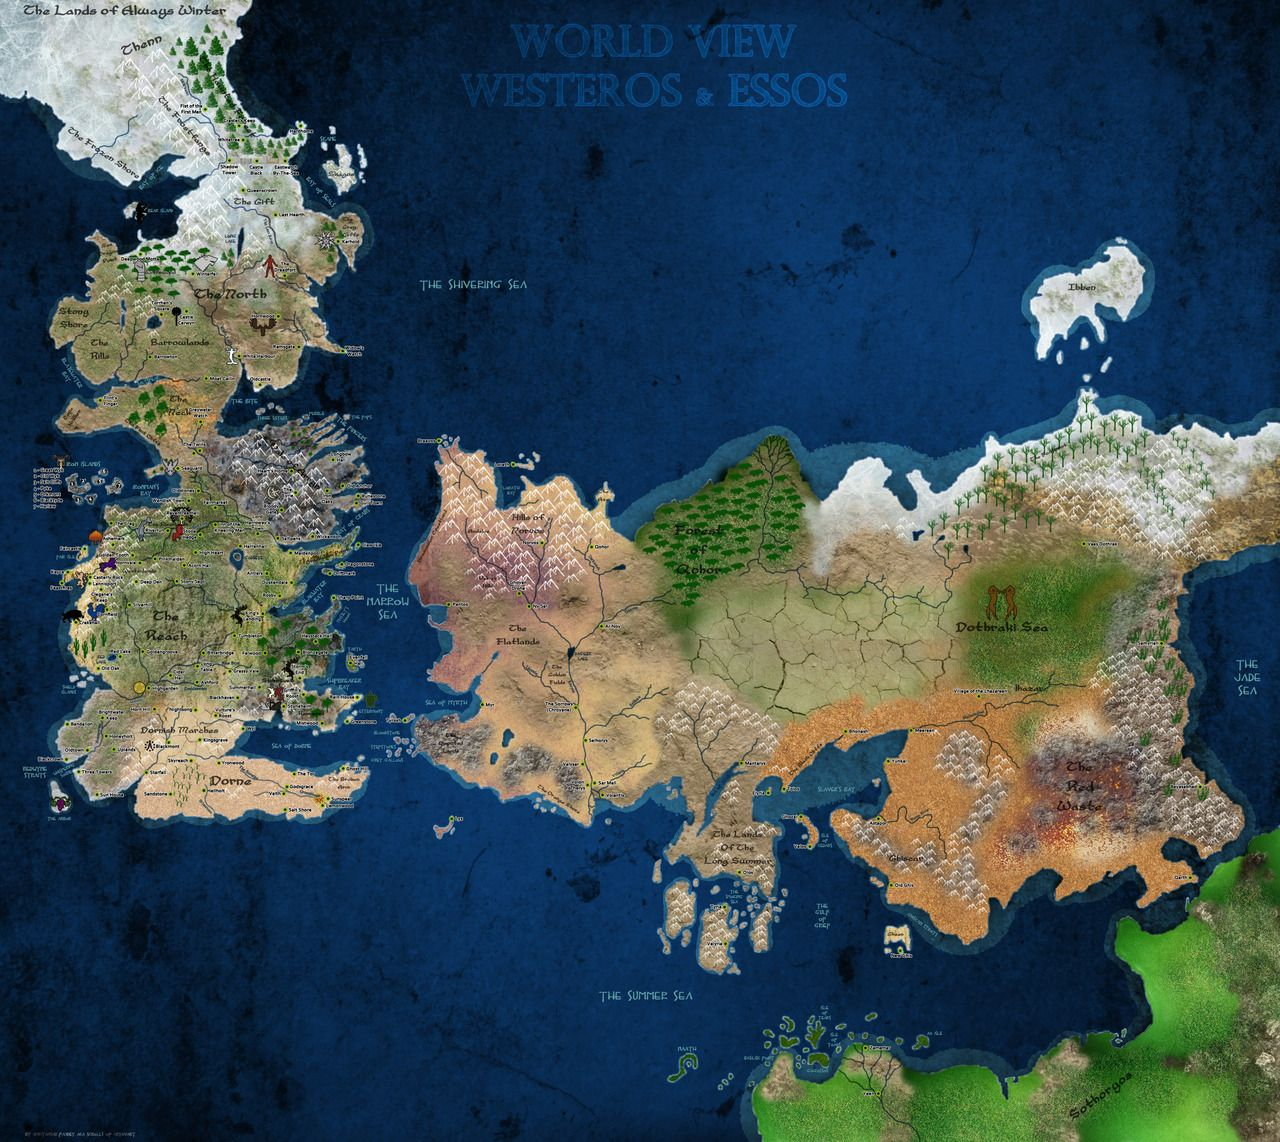 Westeros And Essos World View Gameofthrones Not Ashamed To Let